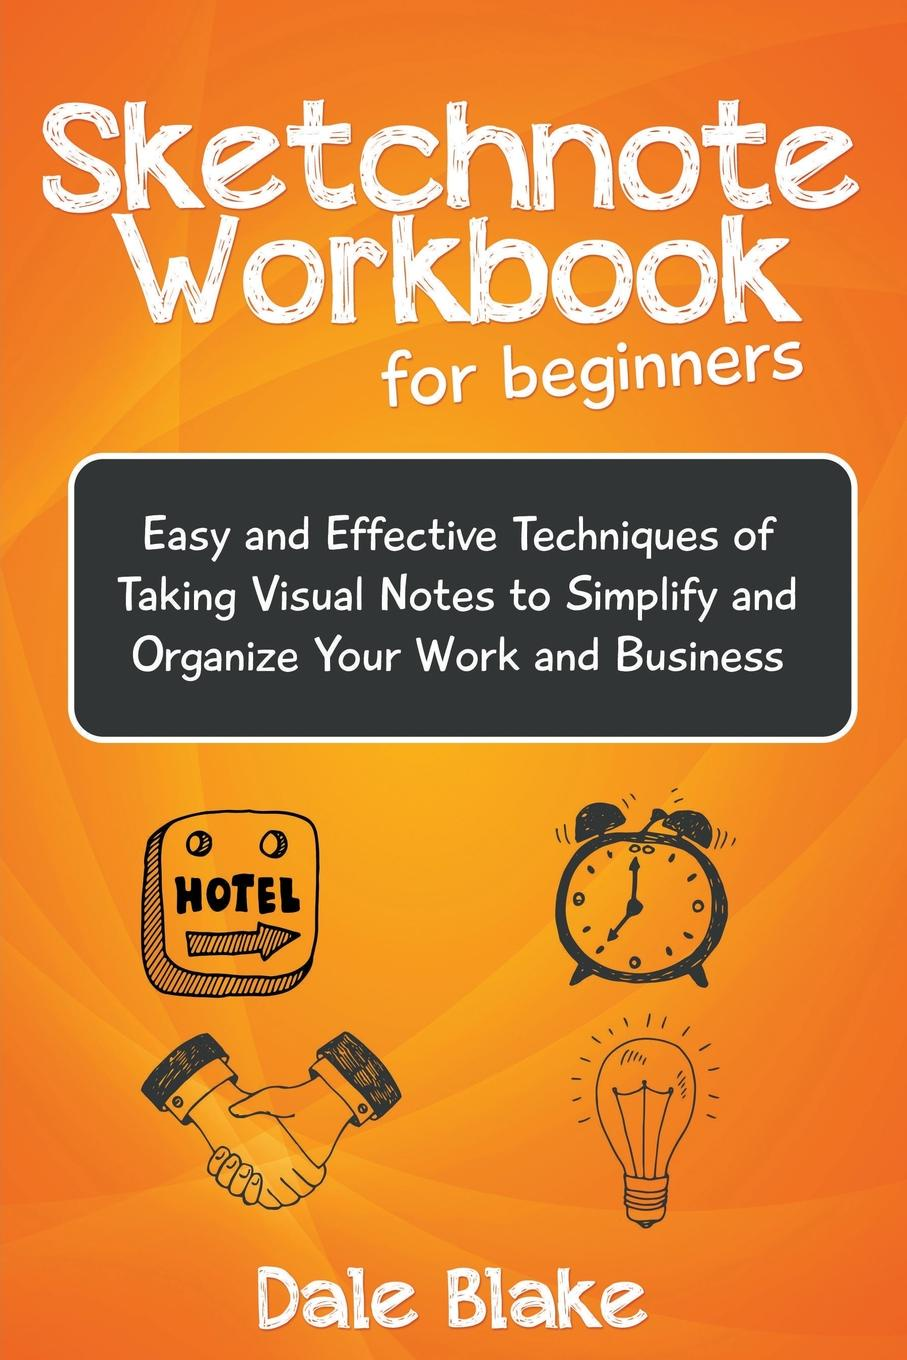 Sketchnote Workbook For Beginners. Easy and Effective Techniques of Taking Visual Notes to Simplify and Organize Your Work and Business